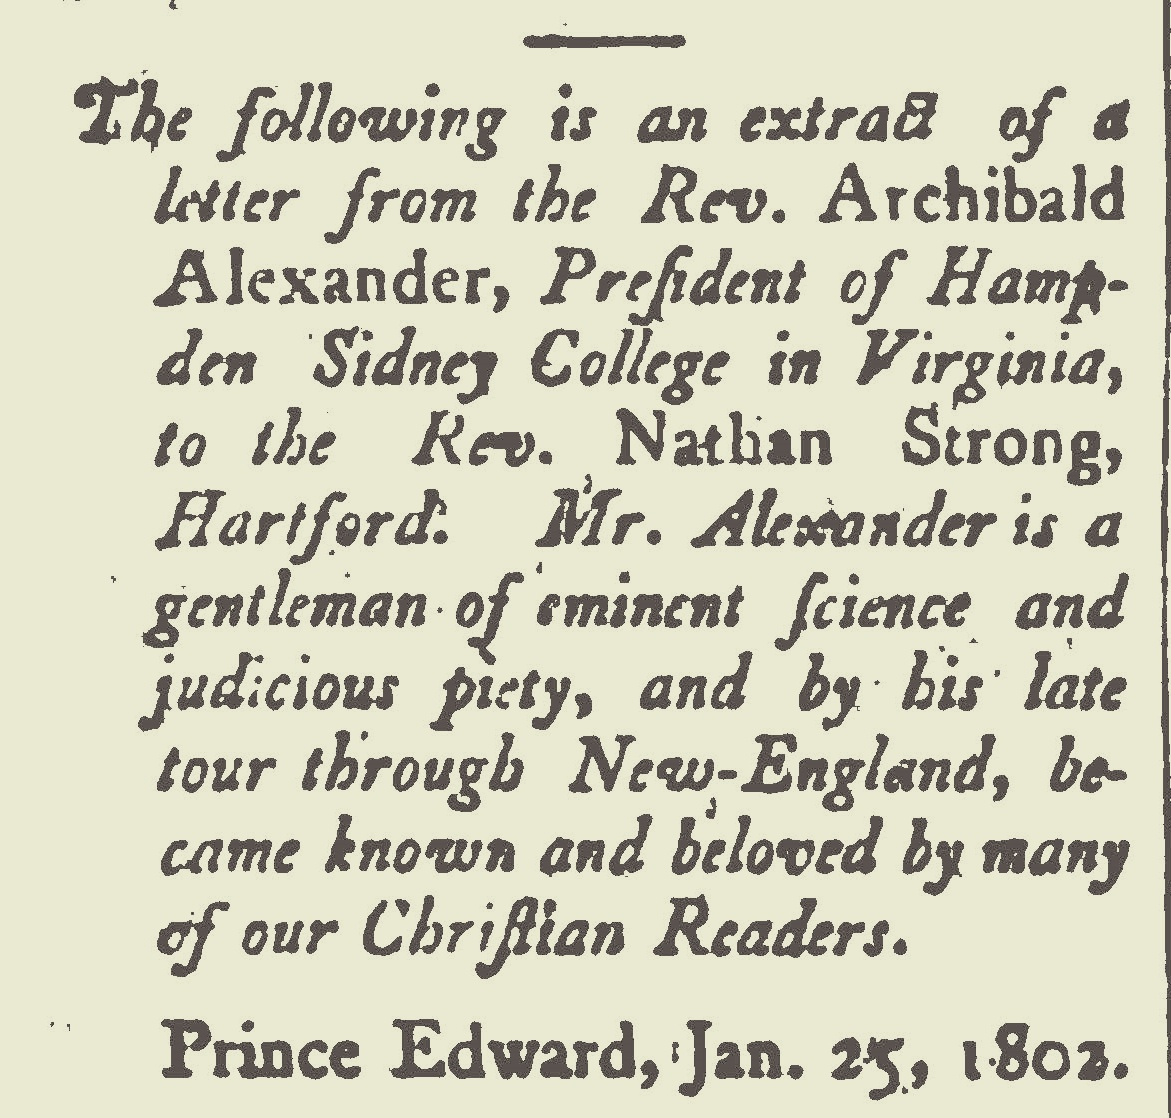 Included in Archibald Alexander's letter is a copy of George A. Baxter's letter on the Kentucky Revival.